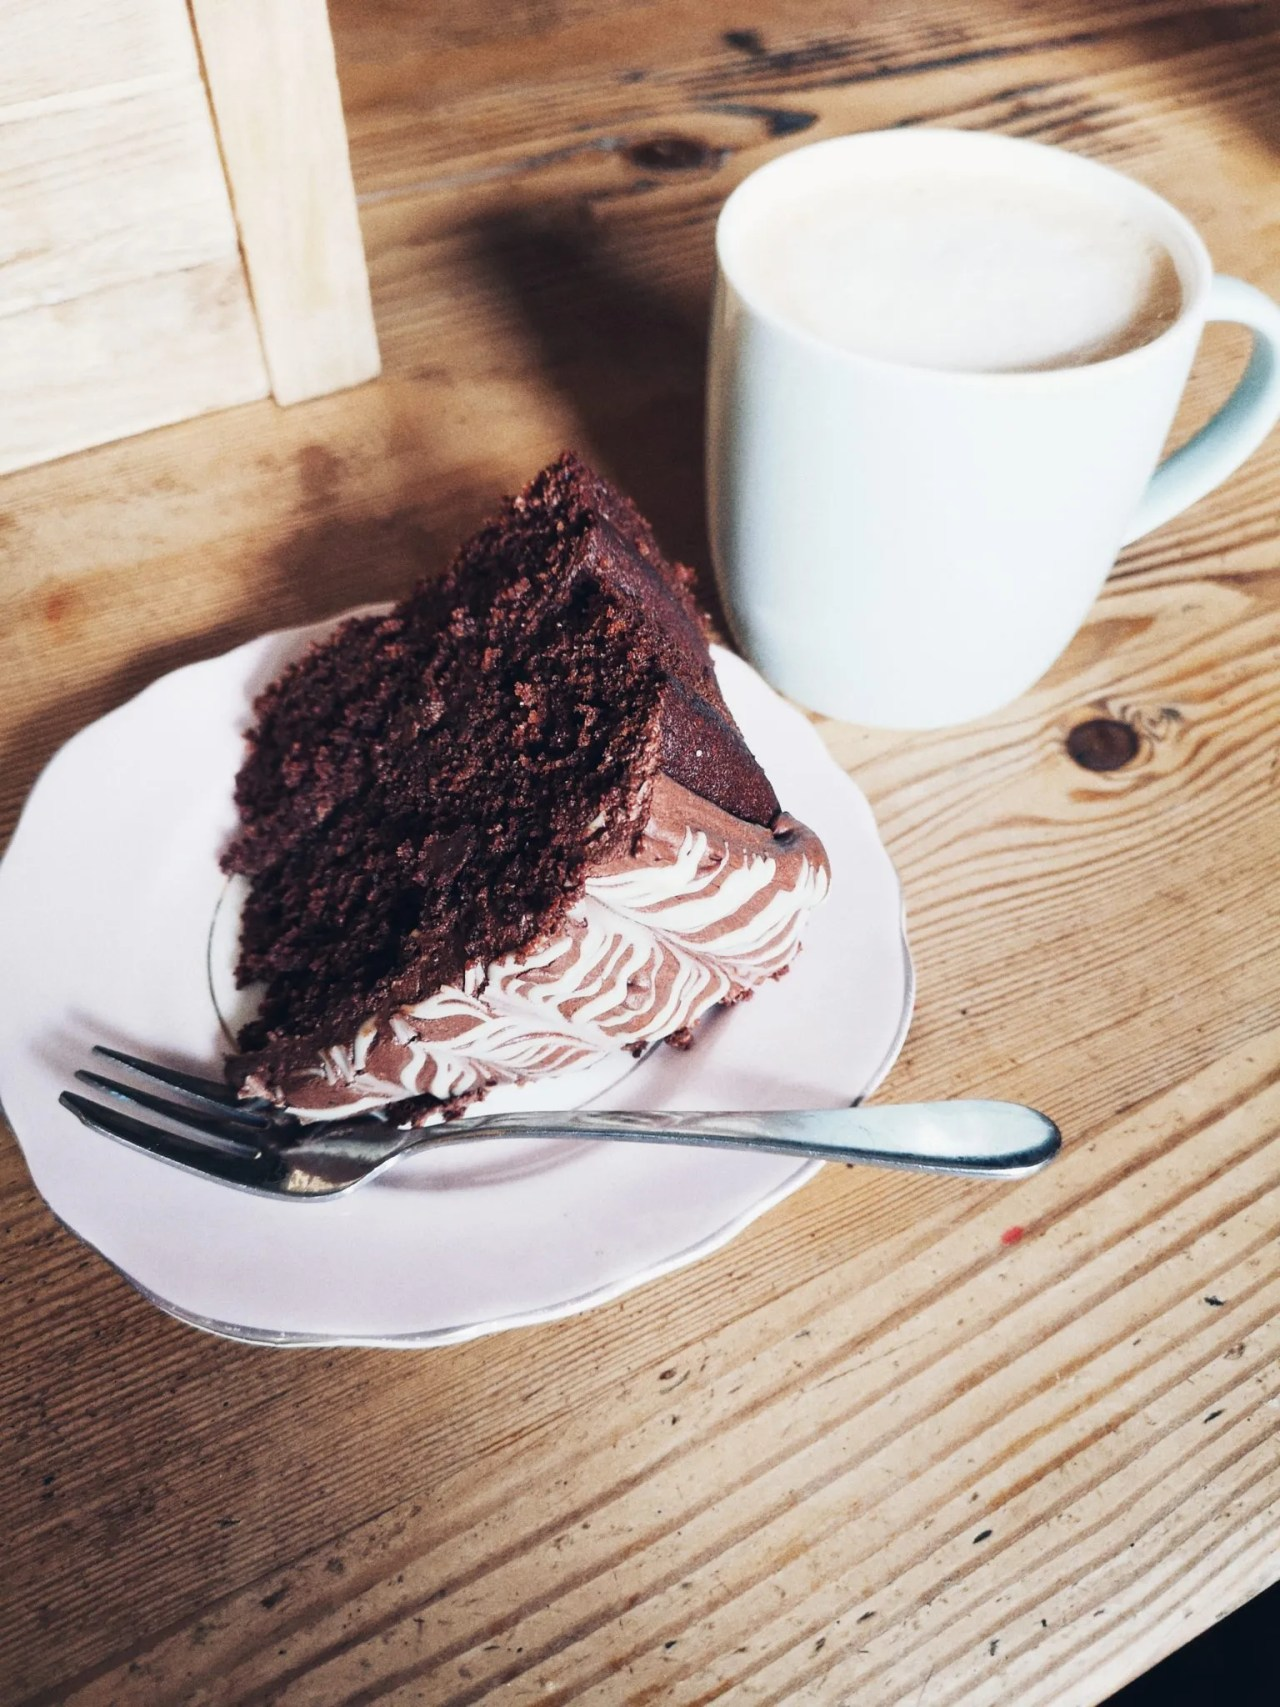 Vegan chocolate cake and coconut milk latte - The Style of Laura Jane